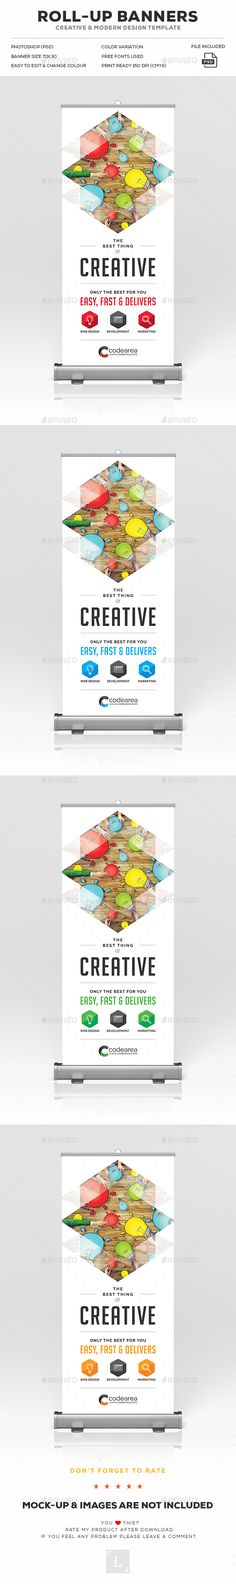 Creative Roll-Up Banner  — PSD Template #sign #signage • Download ➝ https://graphicriver.net/item/creative-rollup-banner/18072109?ref=pxcr